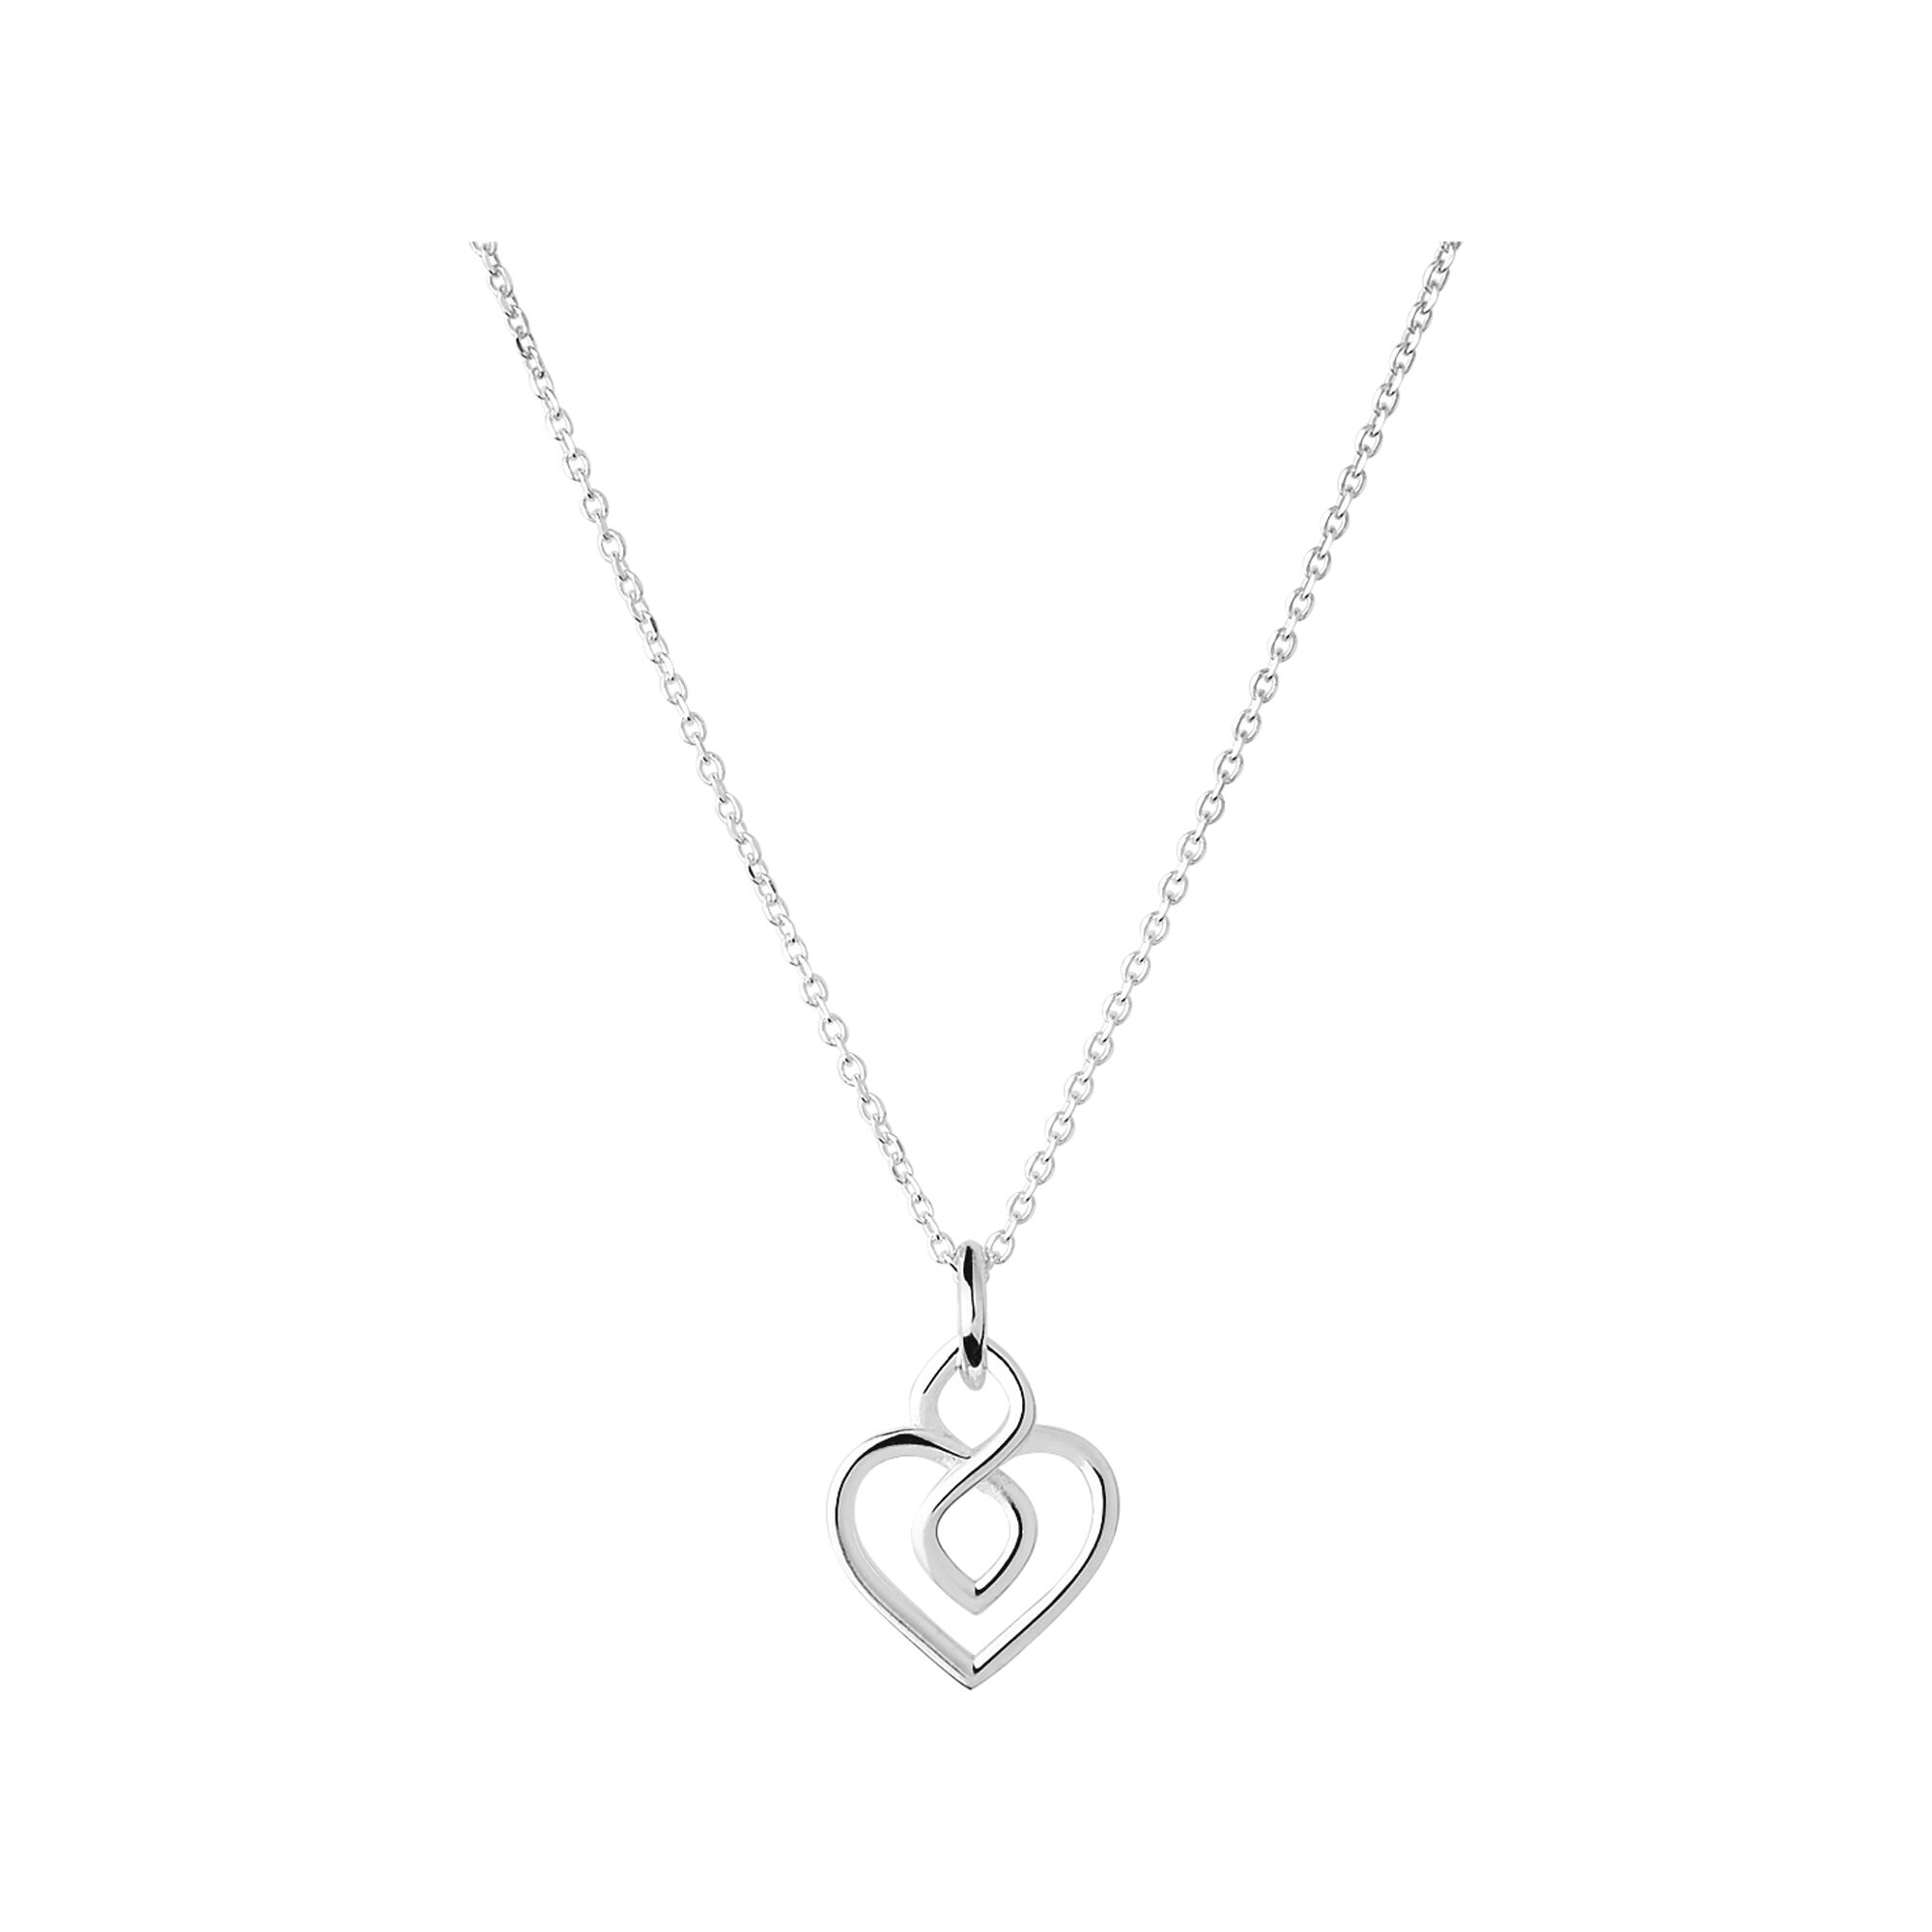 links gb love sterling infinite hires of heart london infinity sign silver necklace en